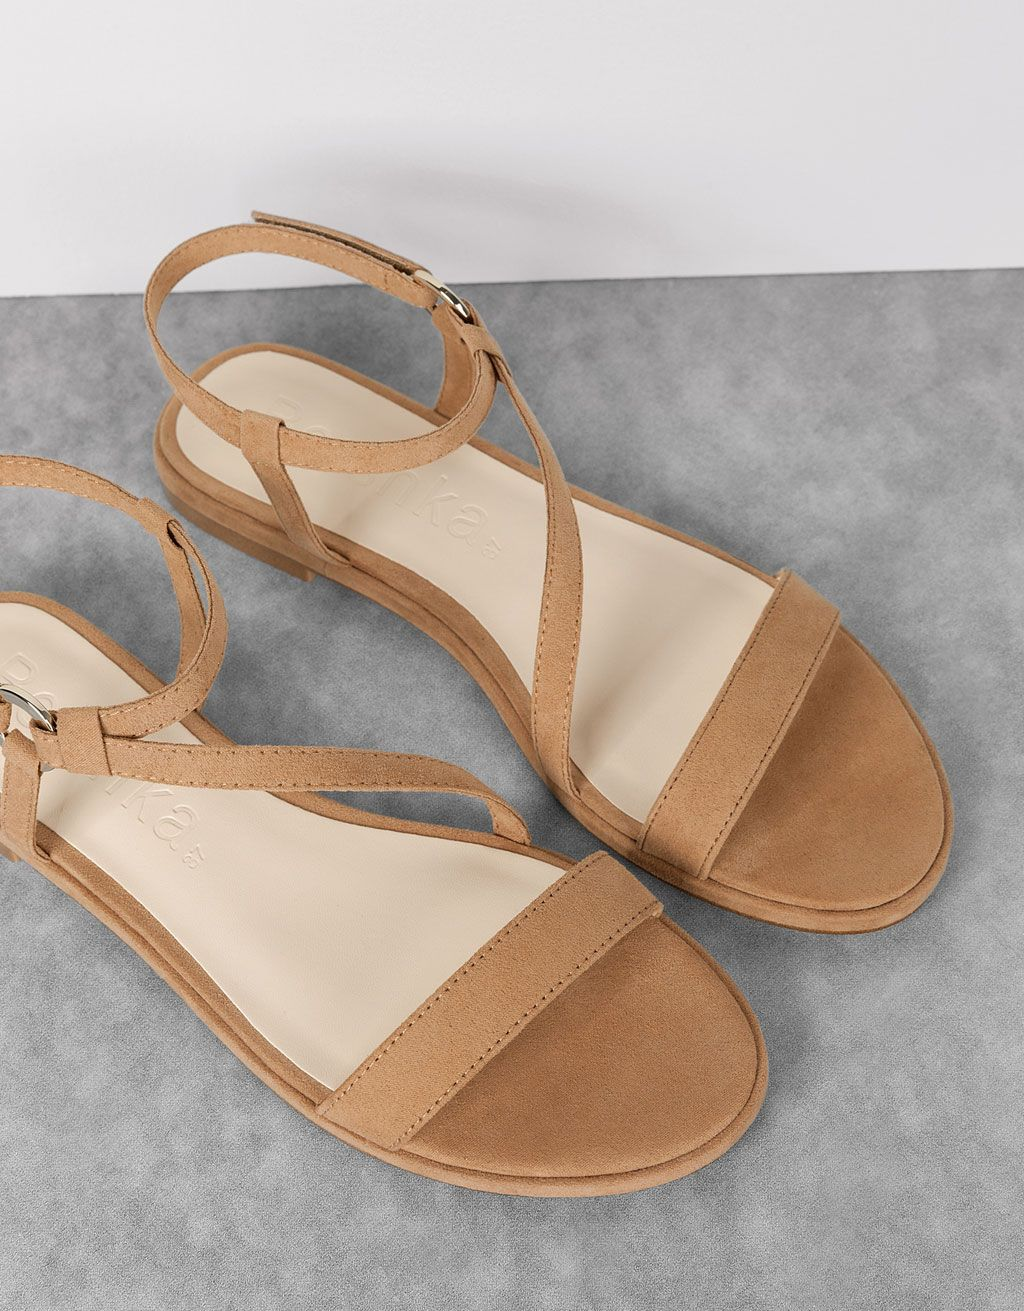 bsk flat strappy sandals. discover this and many more items in